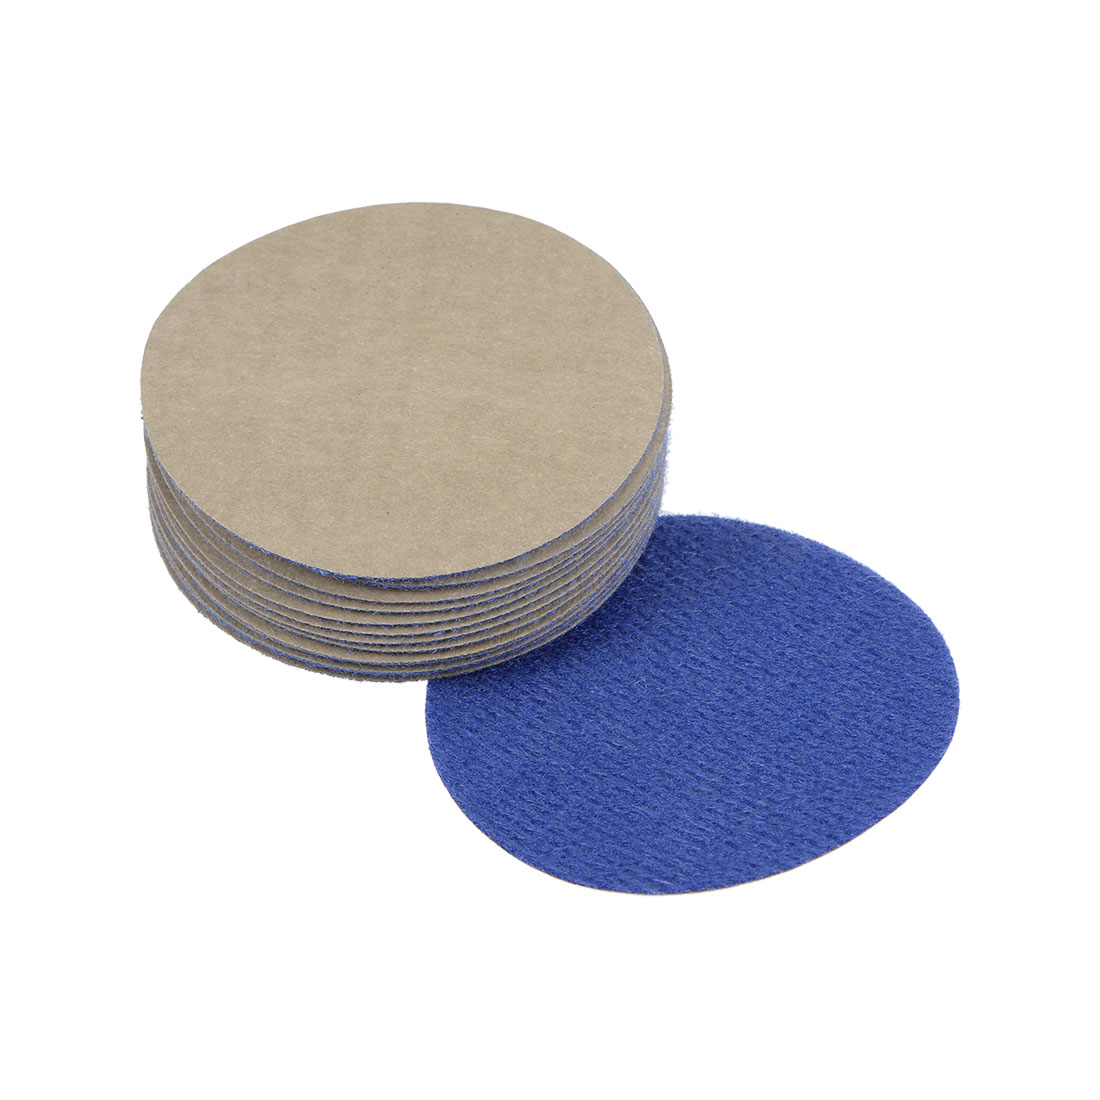 2 inch Wet Dry Discs 7000 Grit Hook and Loop Sanding Disc Silicon Carbide 15pcs